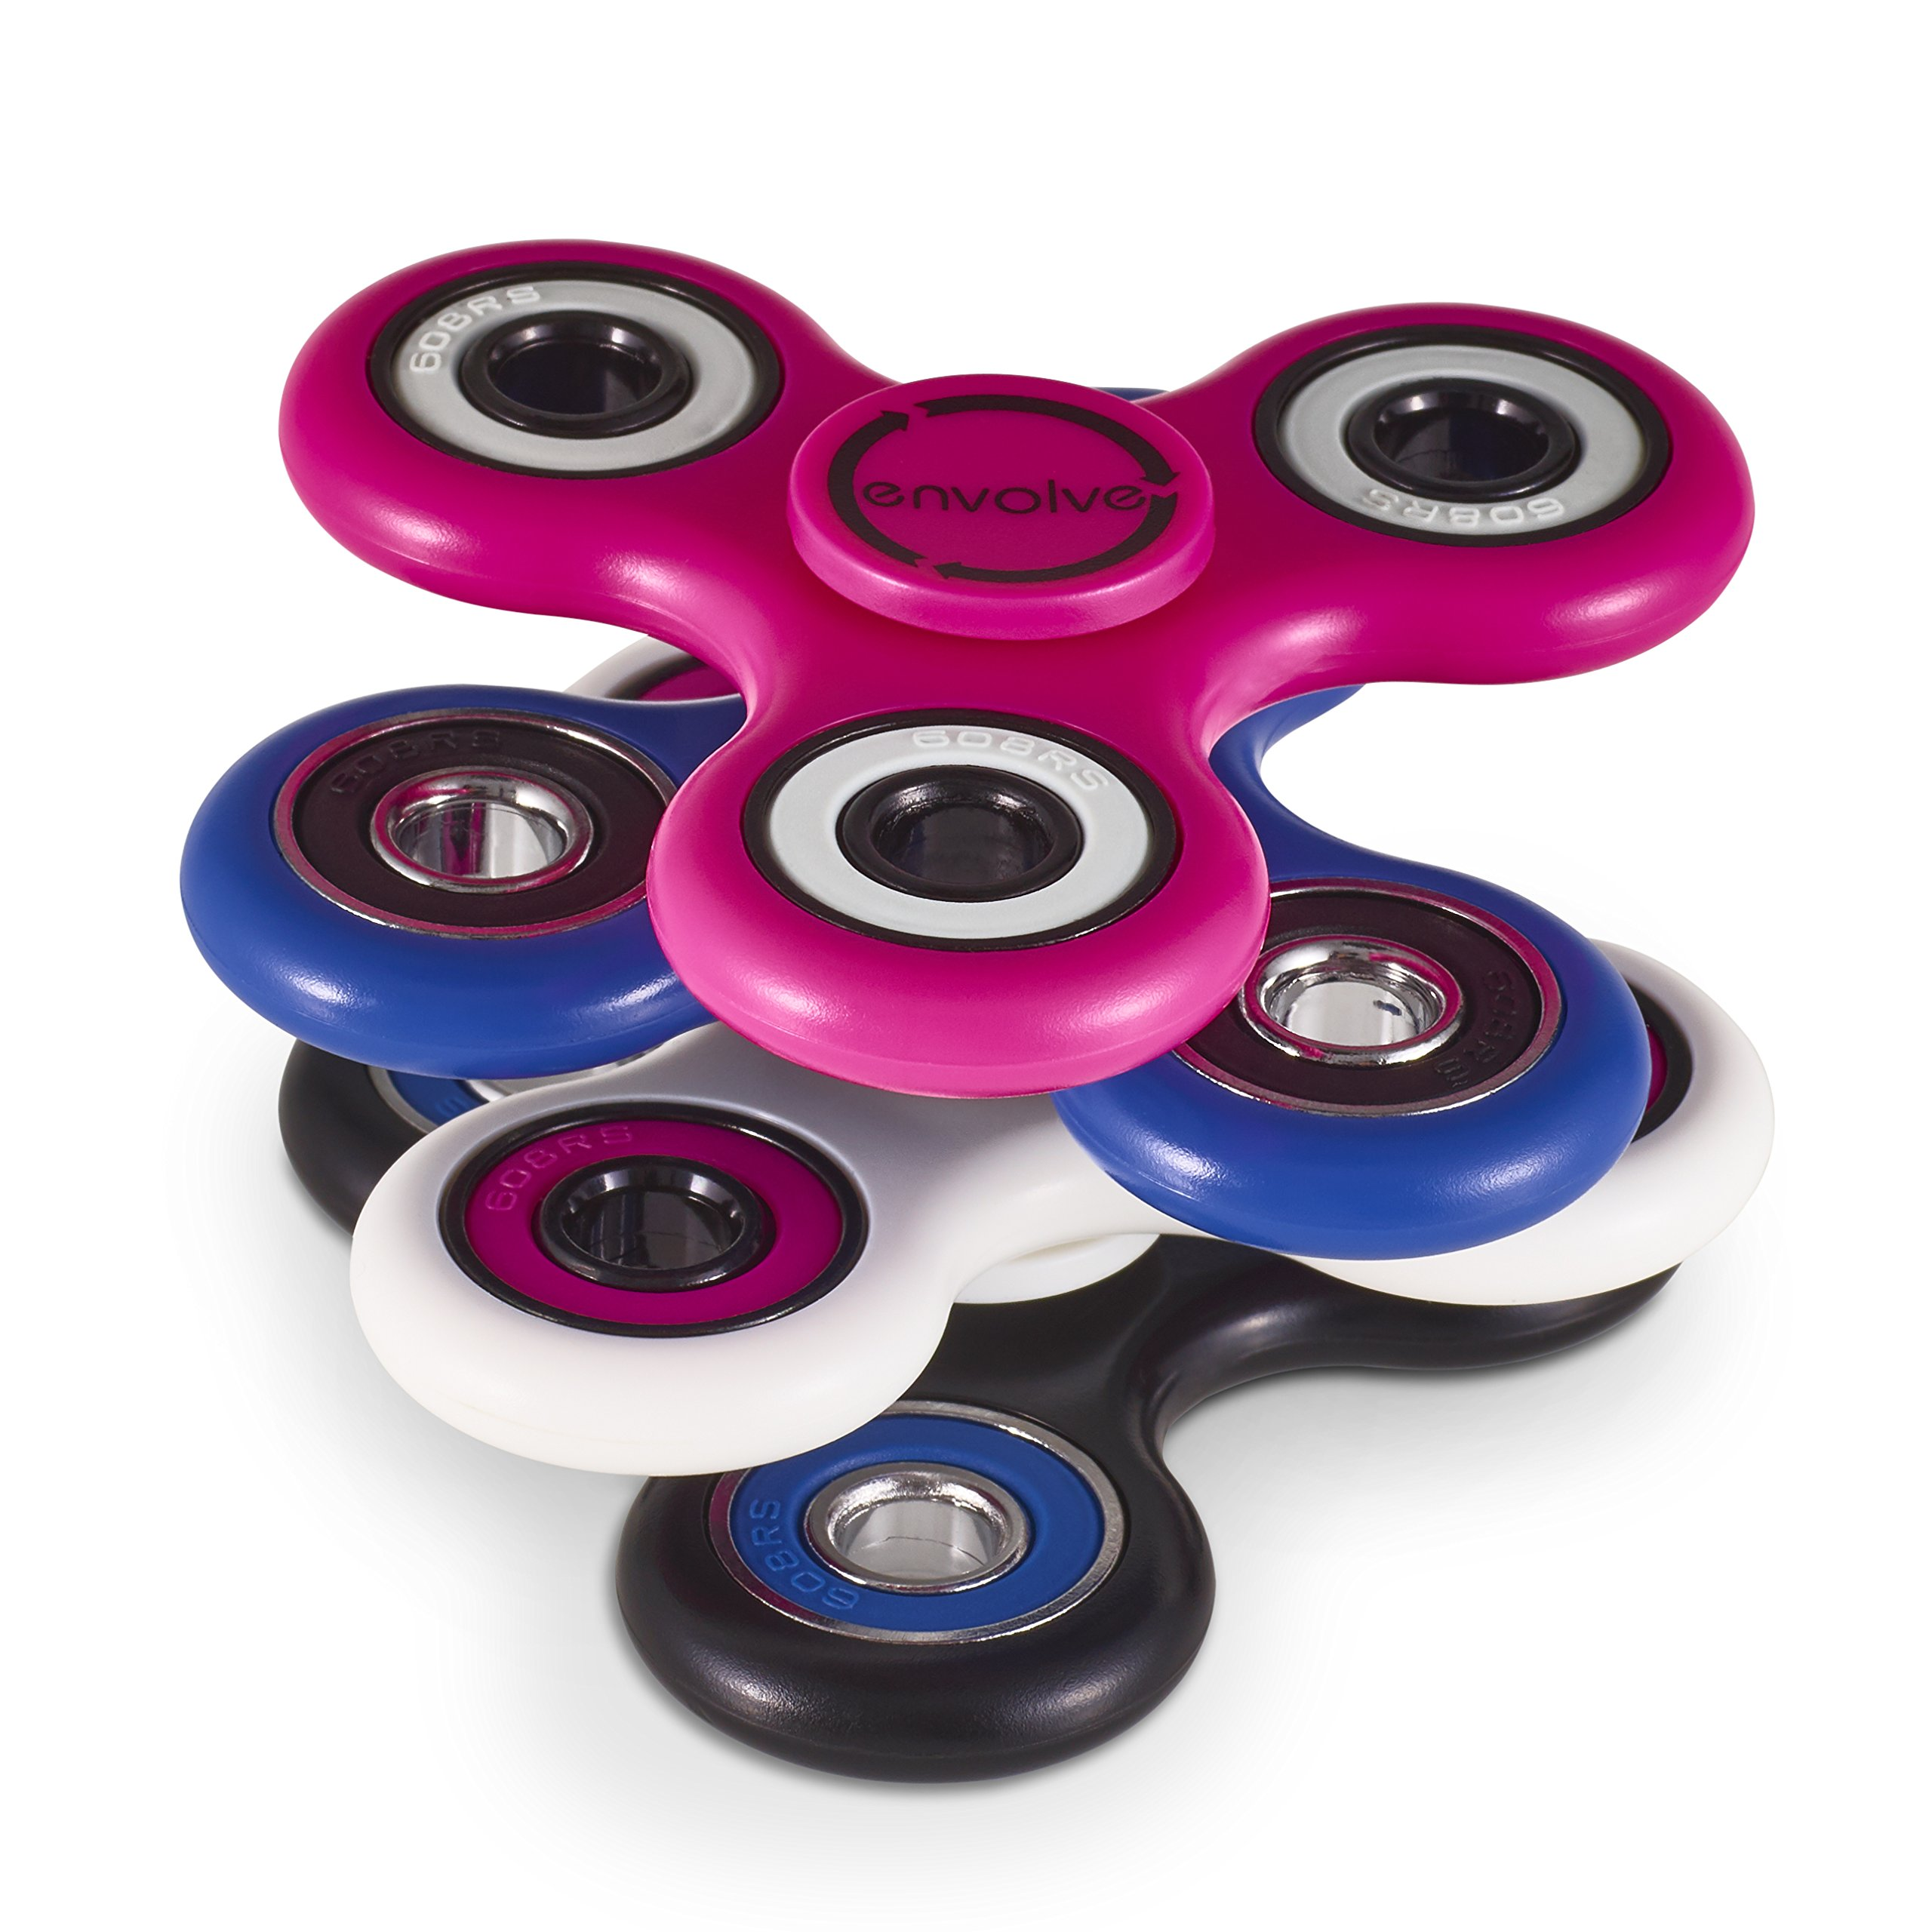 Envolve Two Spinners Connected! Dual Stackable Fidget Spinner Set (blue/black) by, the Only STACK AND SPIN Fidget Spinner - Long spins 3-4 minutes (Great Gift Packaging) by Envolve (Image #5)